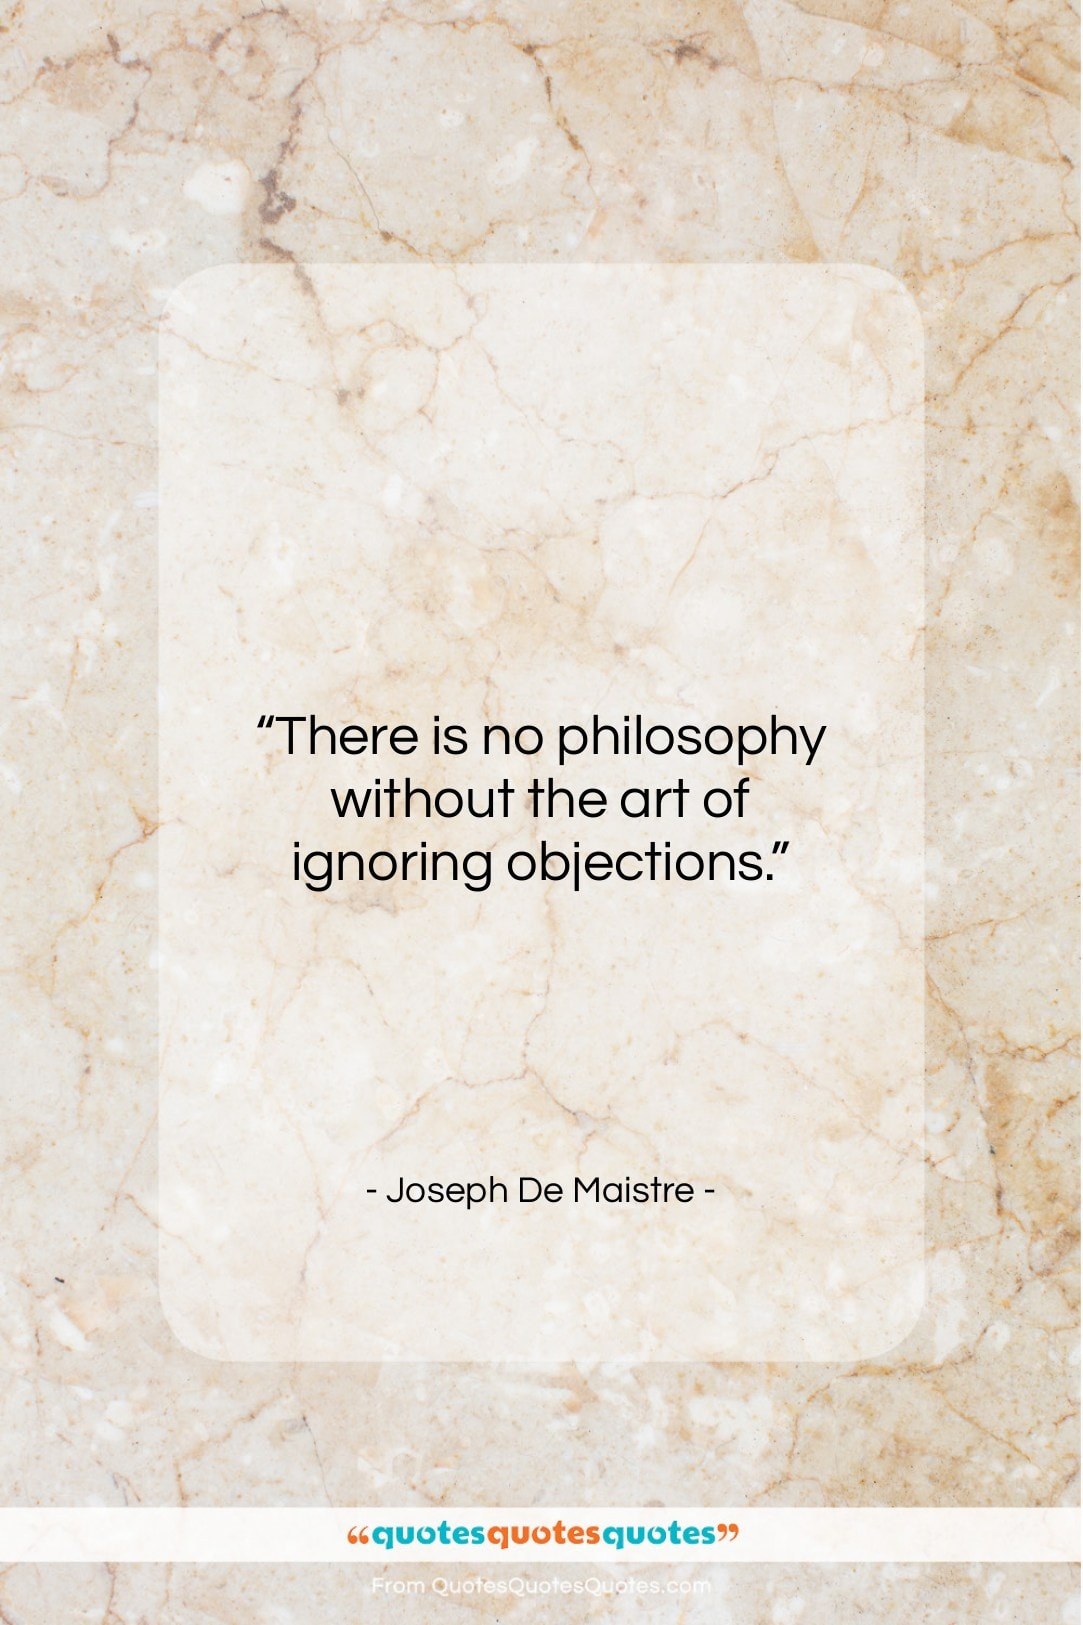 """Joseph De Maistre quote: """"There is no philosophy without the art…""""- at QuotesQuotesQuotes.com"""